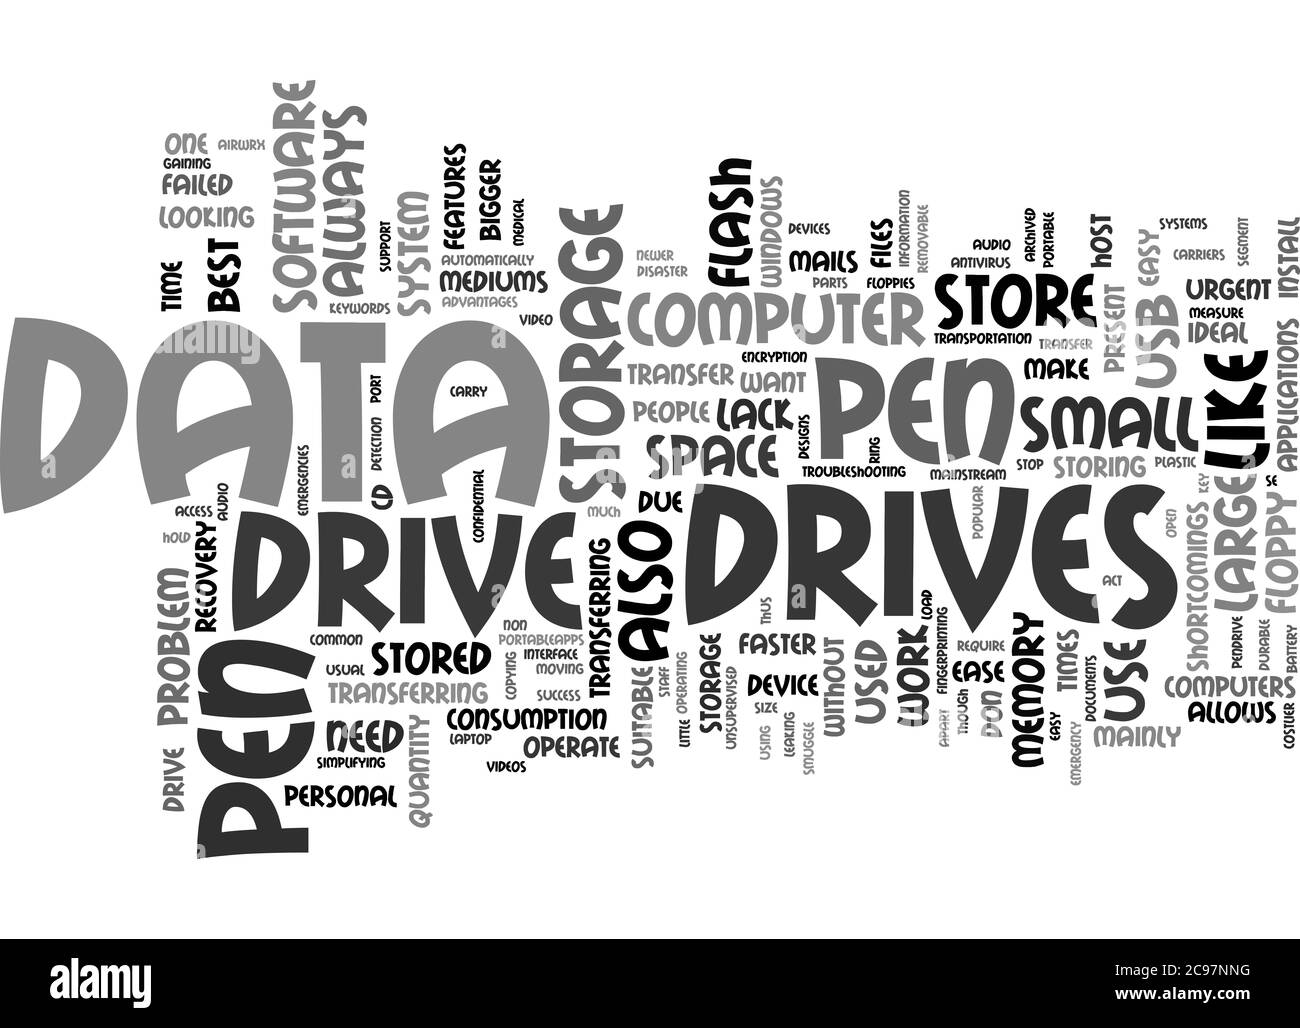 Word Cloud Summary of Data Transfer Made Easy By Pen Drive Article Stock Photo